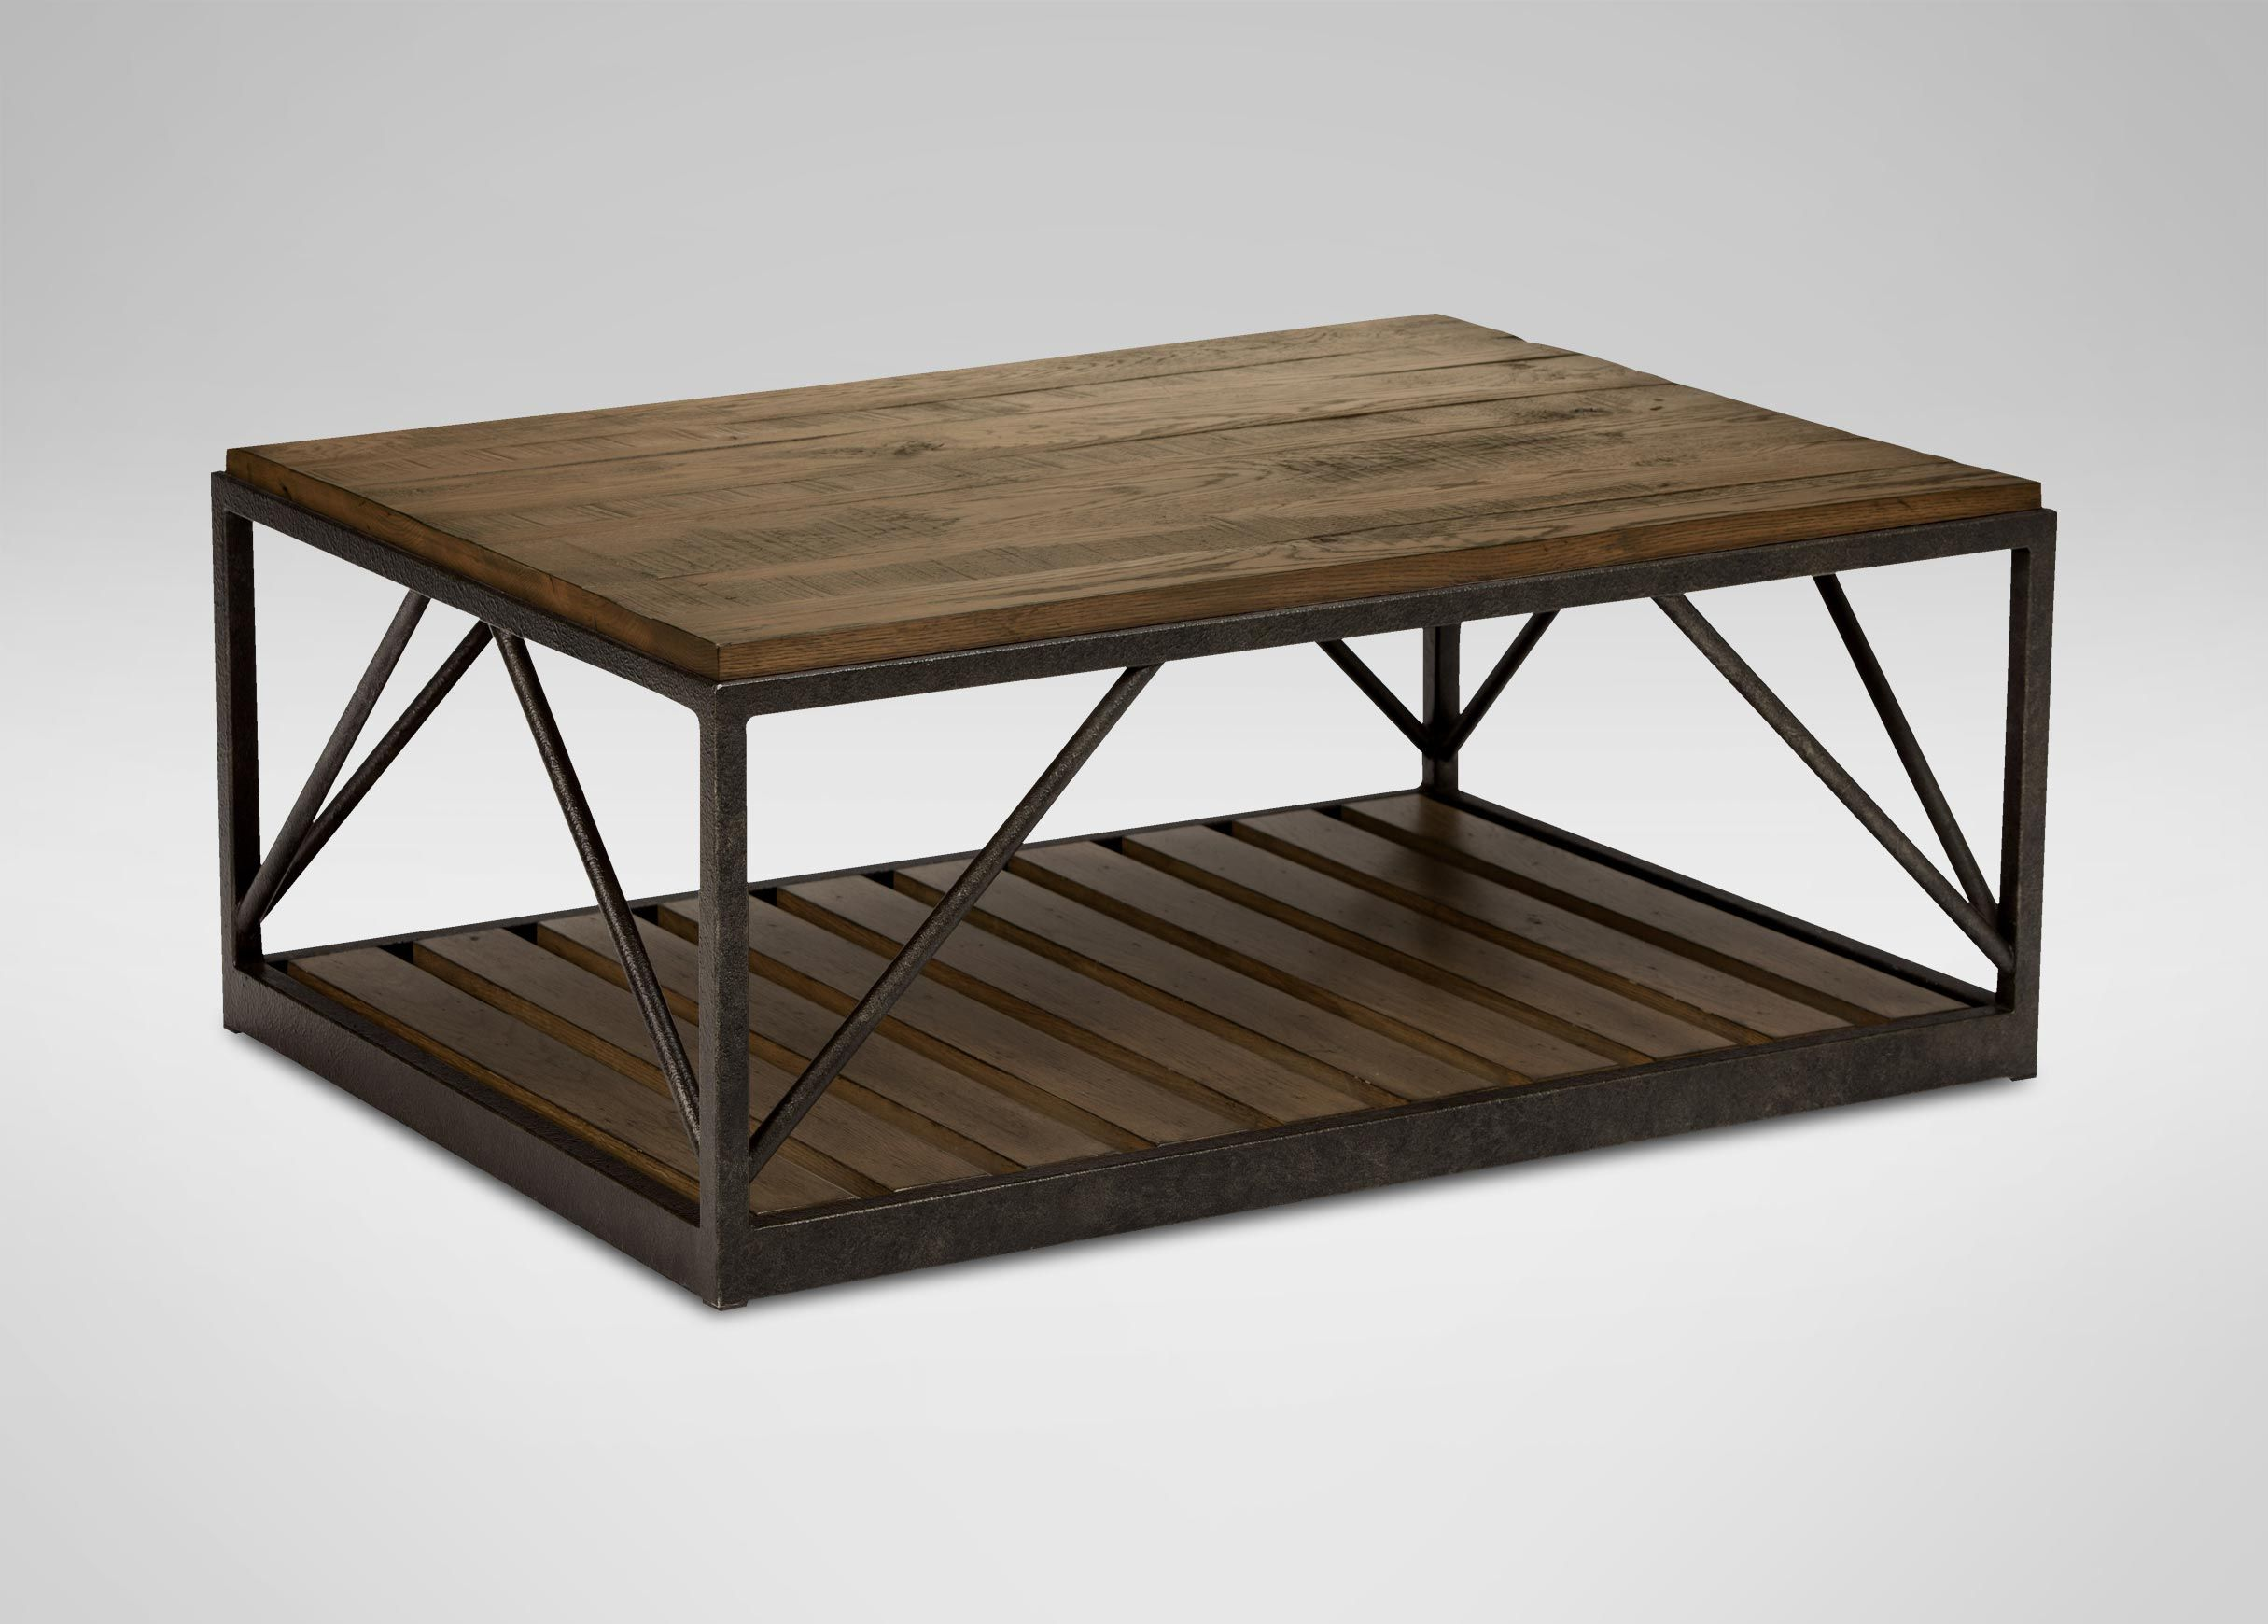 Beam Metal Base Coffee Table Coffee Tables Coffee Table Metal Base Coffee Table Living Room Coffee Table [ 1740 x 2430 Pixel ]